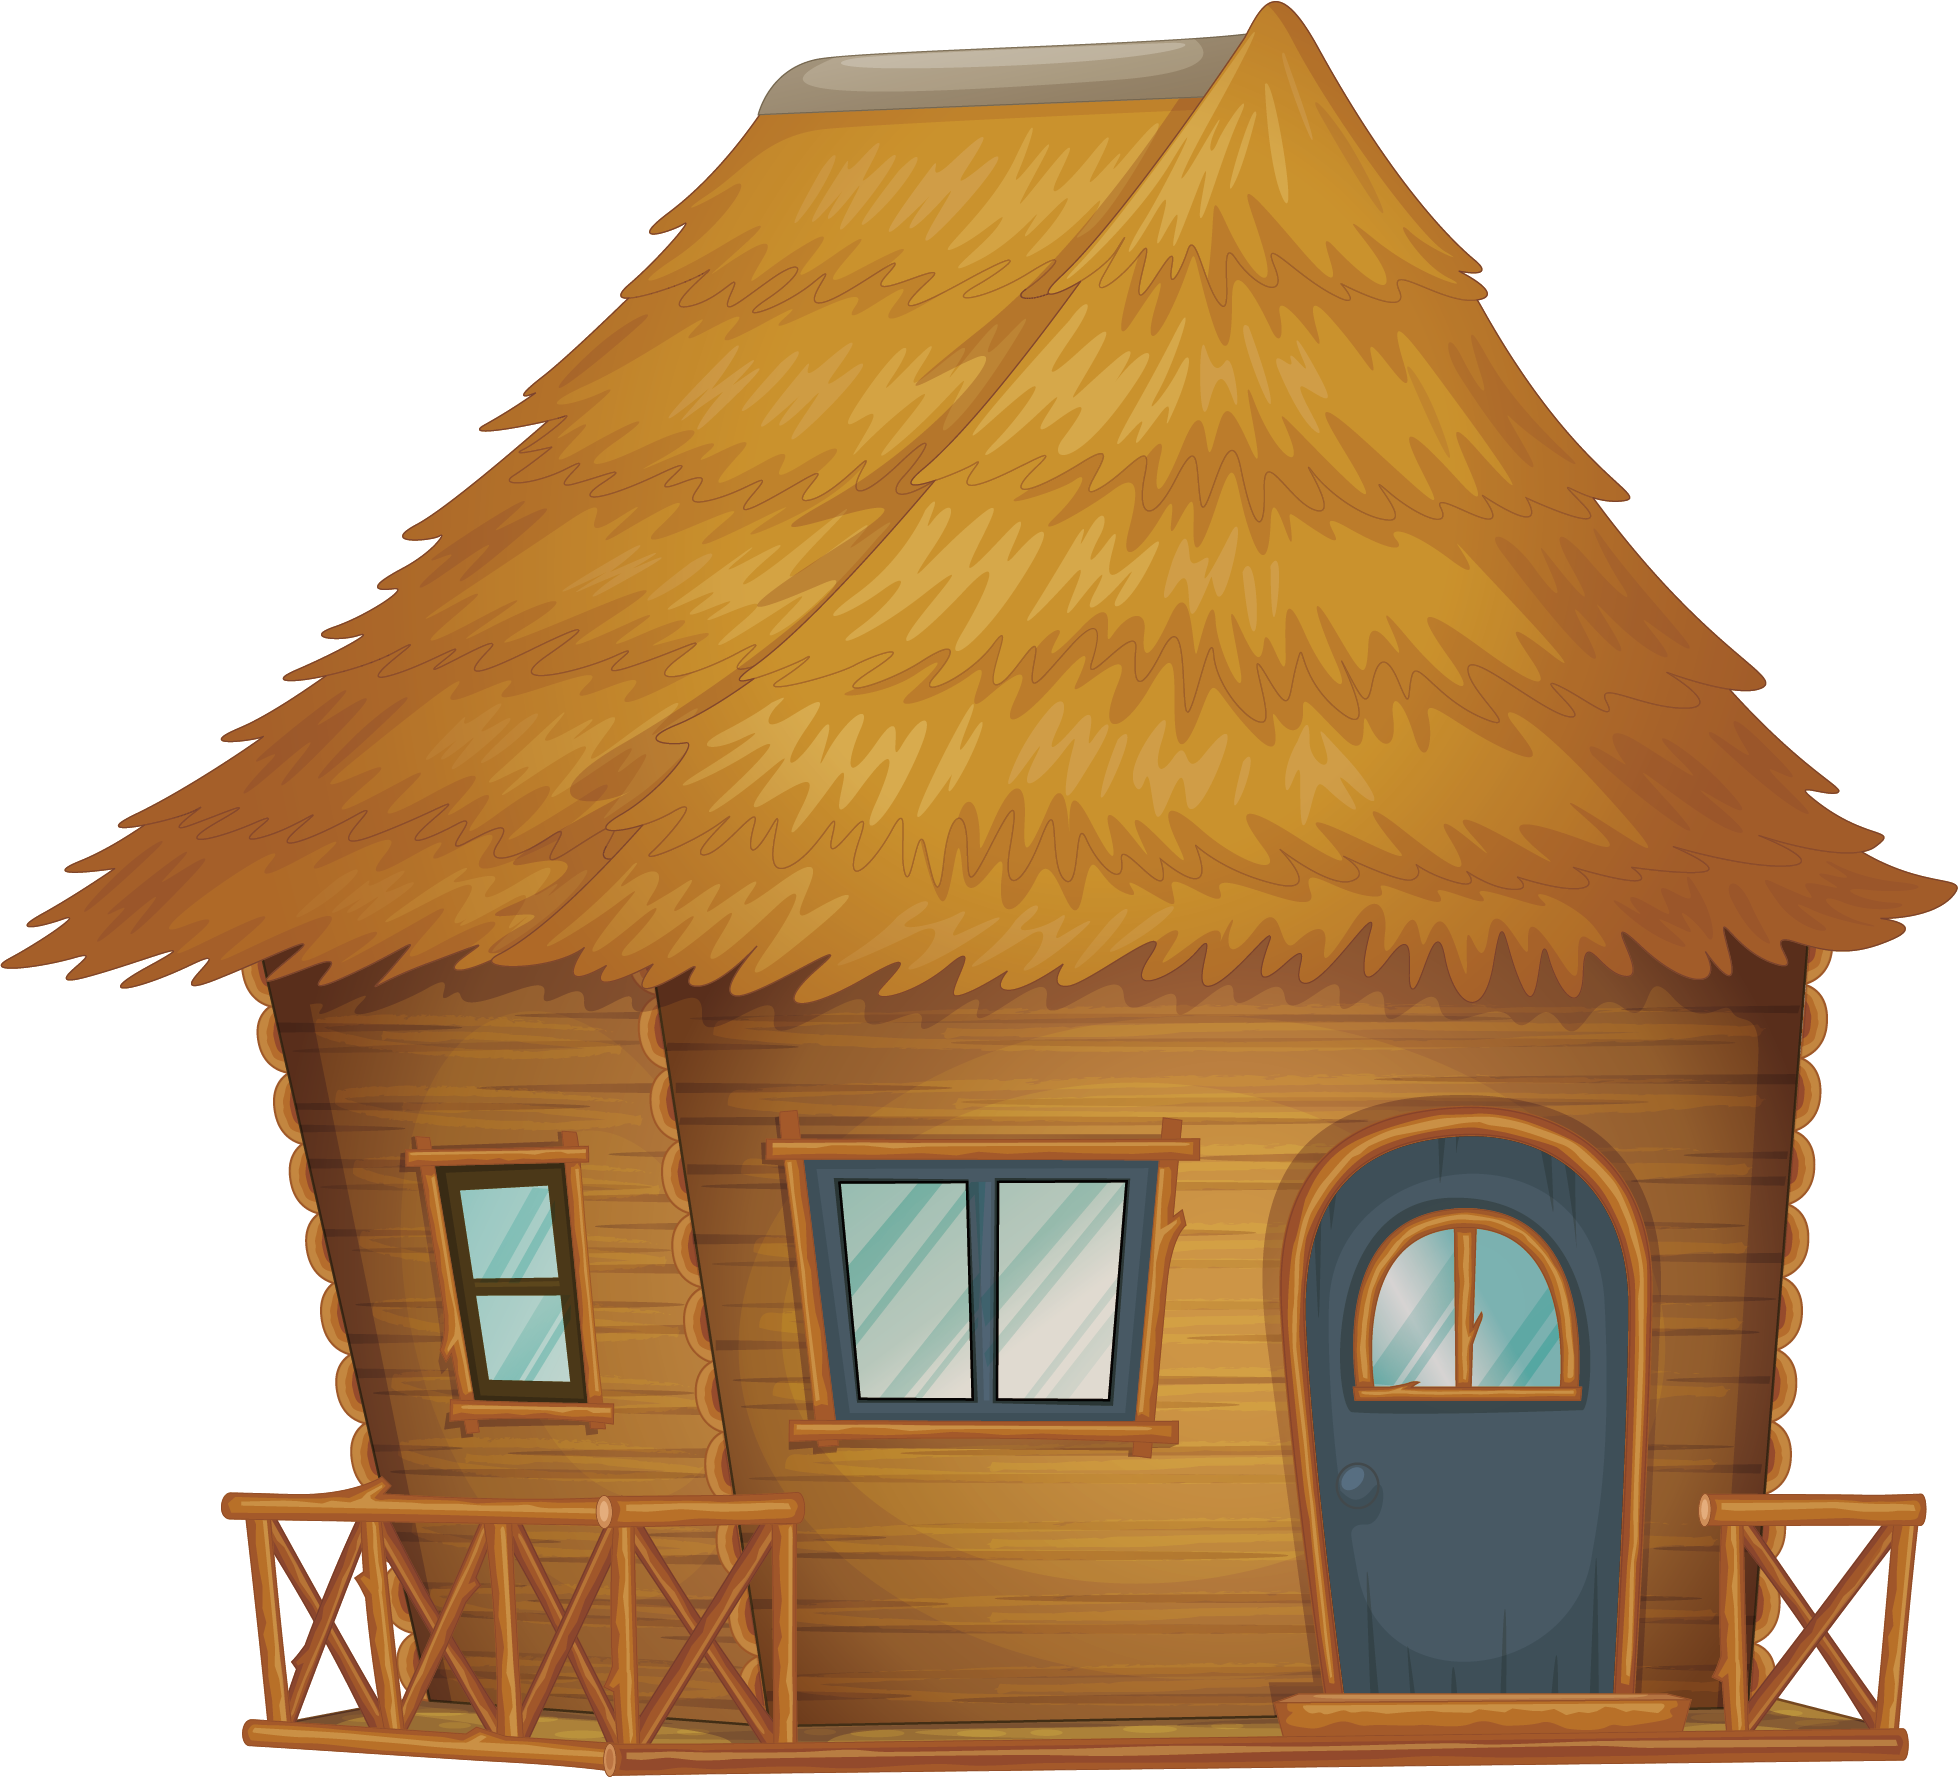 Hut clipart straw house, Hut straw house Transparent FREE ...